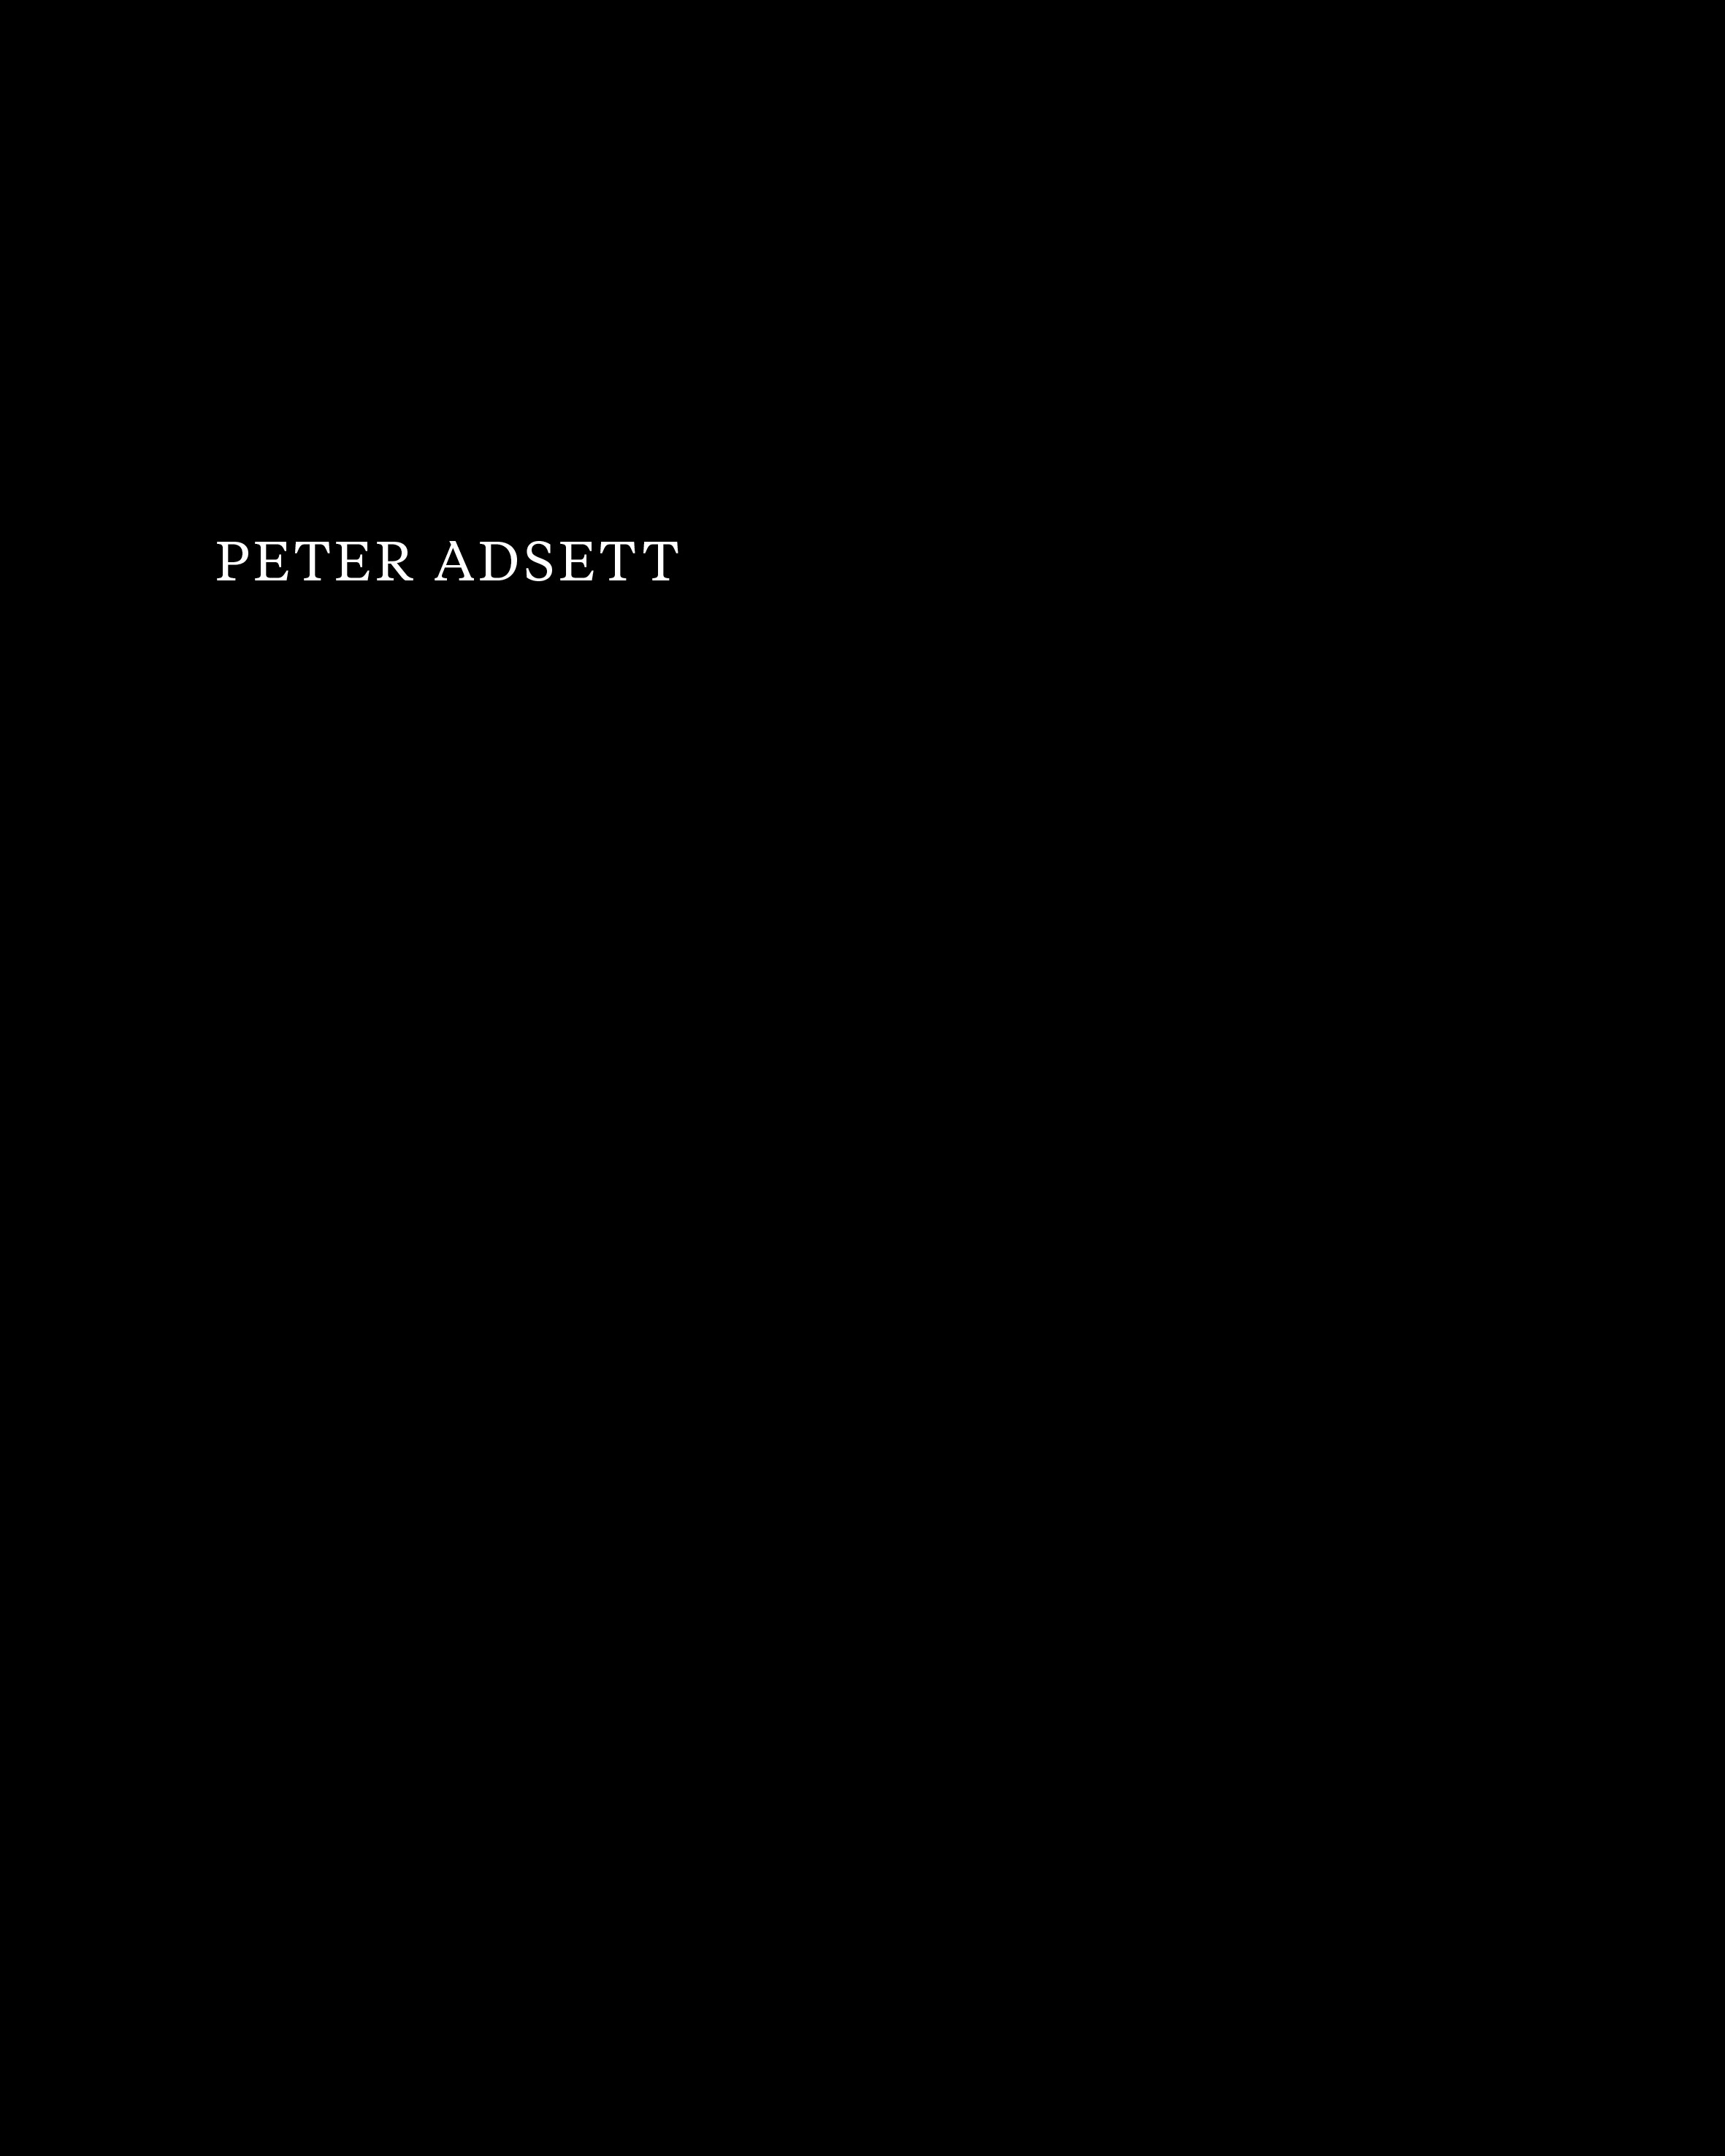 Peter Adsett, Painting's Back –Author: Mary Alice Lee